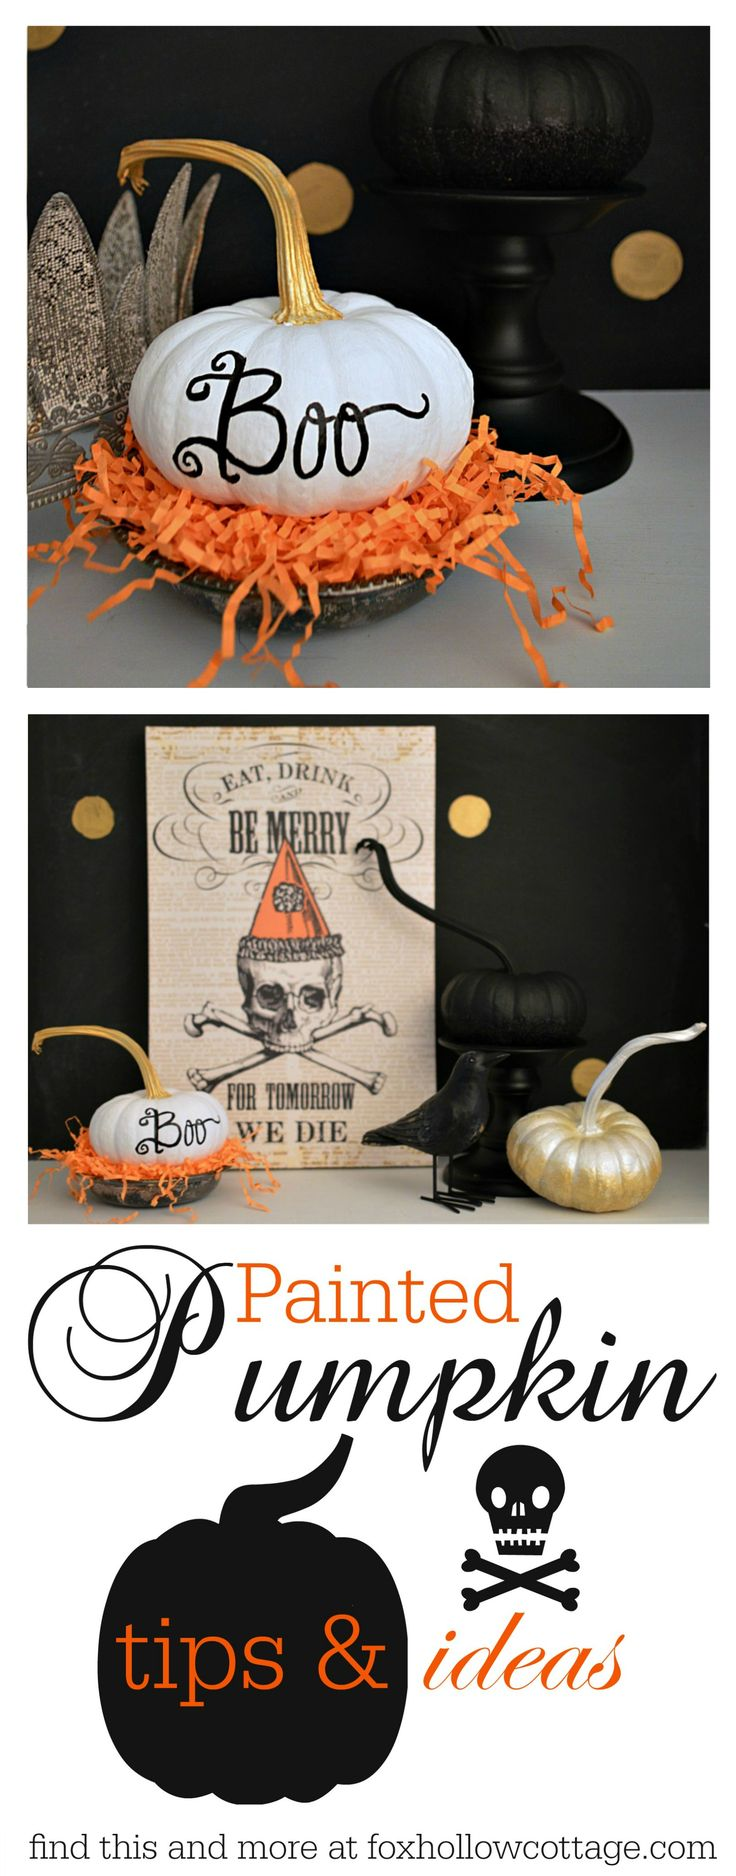 25 best ideas about painted pumpkins on pinterest for Make your own halloween decorations